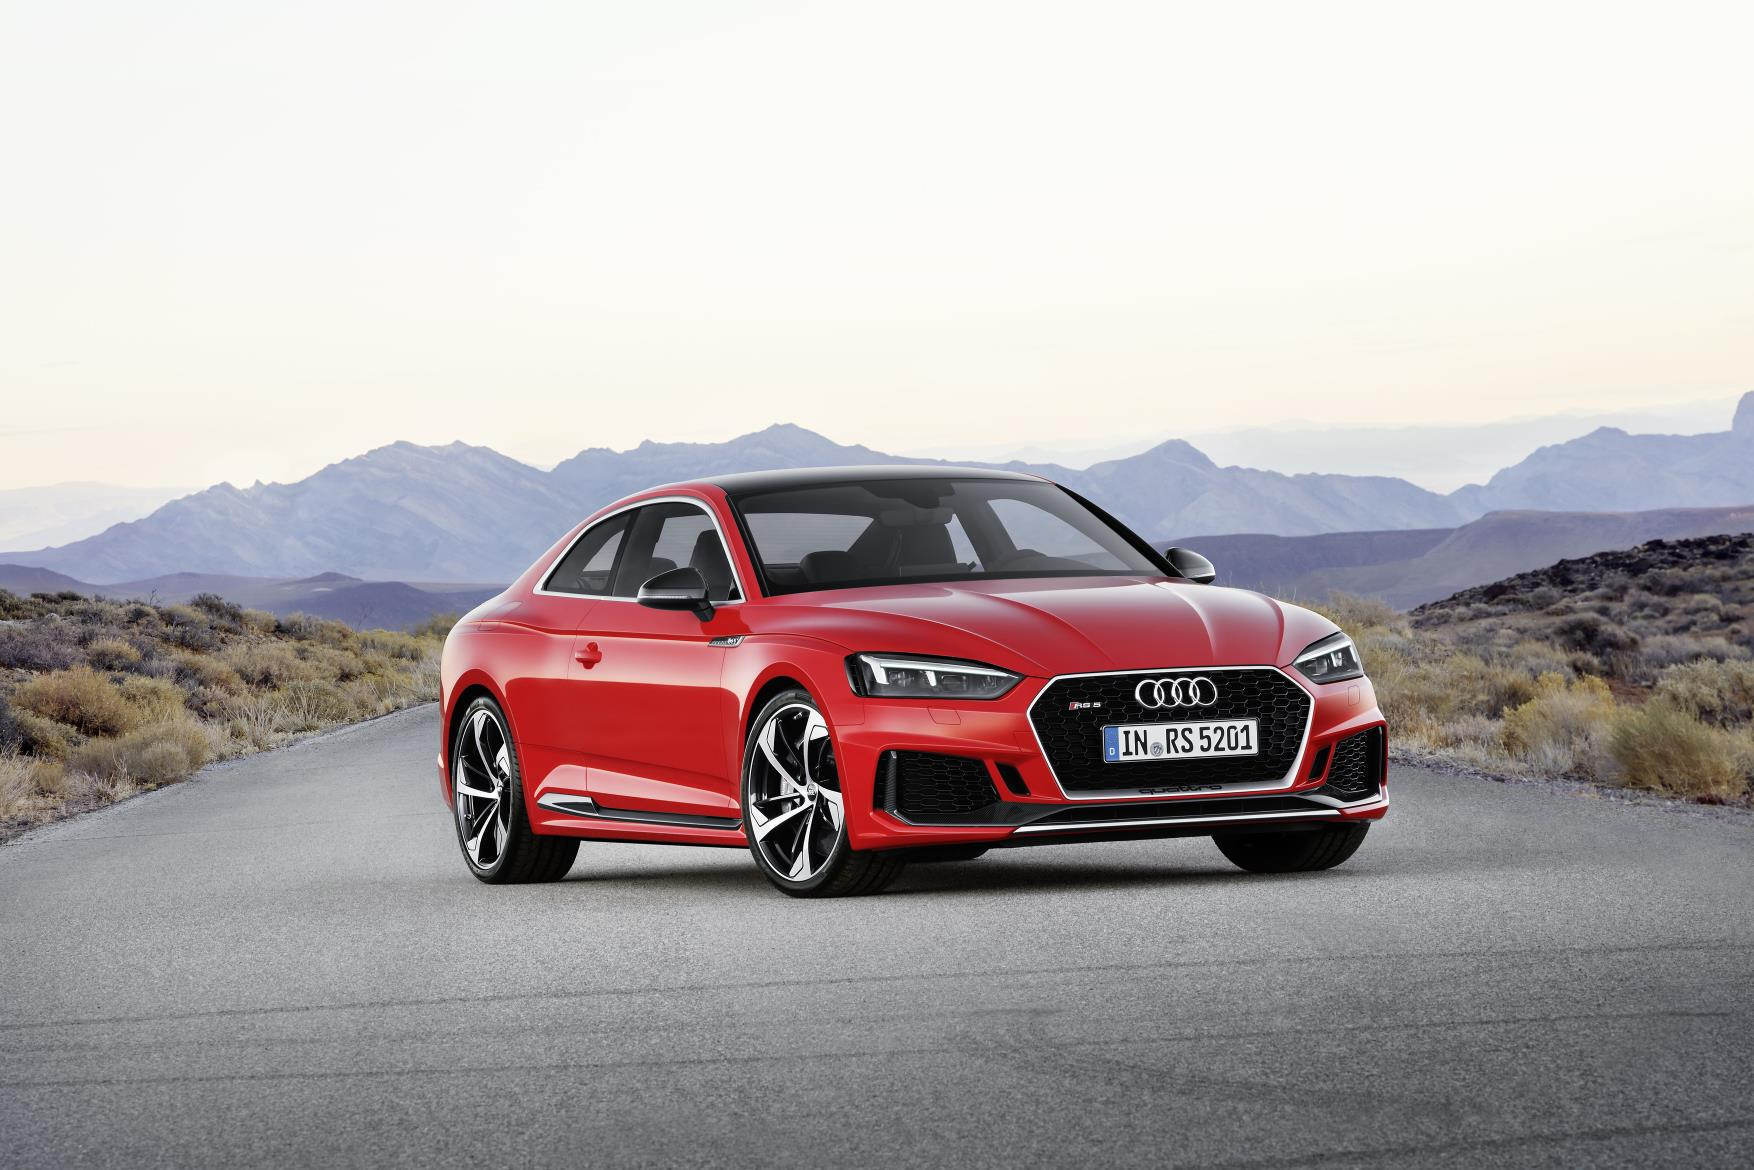 Audi Prices RS Coupe From EUR Autoevolution - Audi rs 5